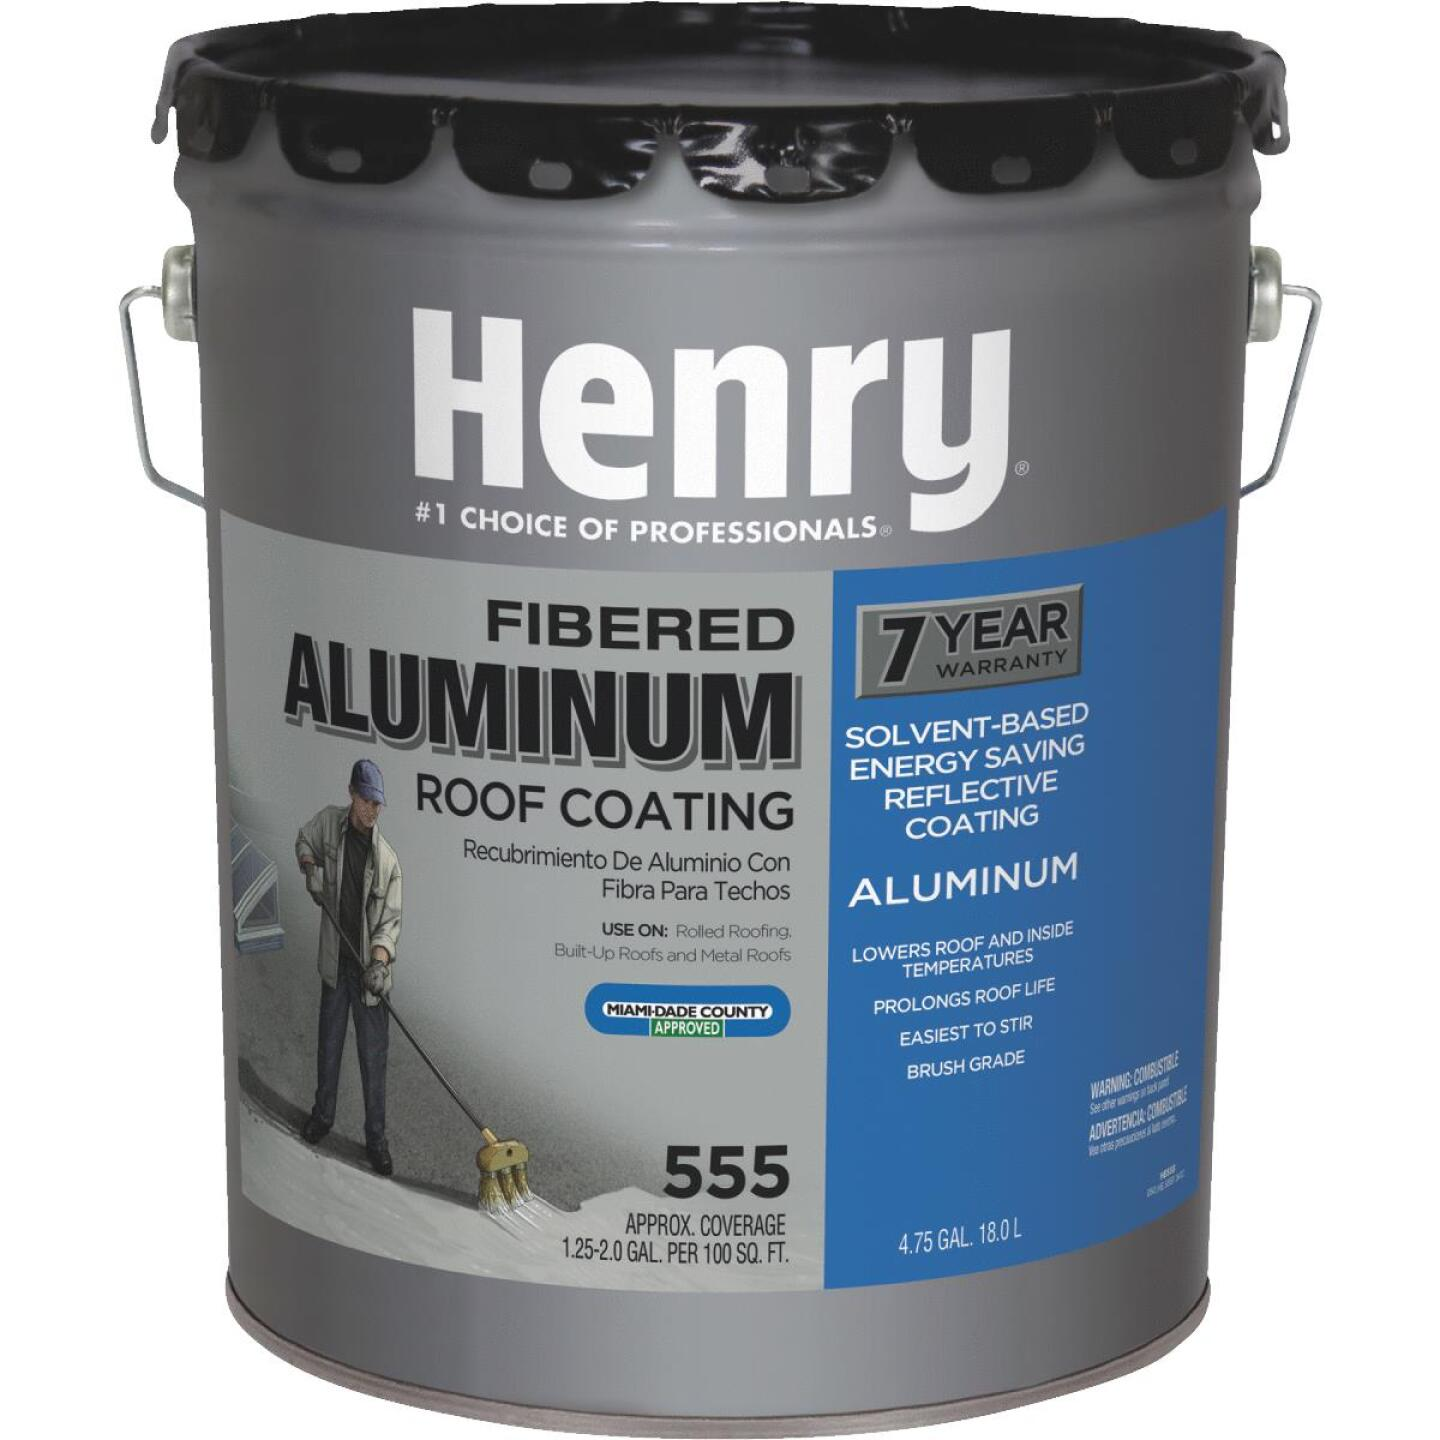 Henry 5 Gal. Fibered Aluminum Roof Coating Image 1